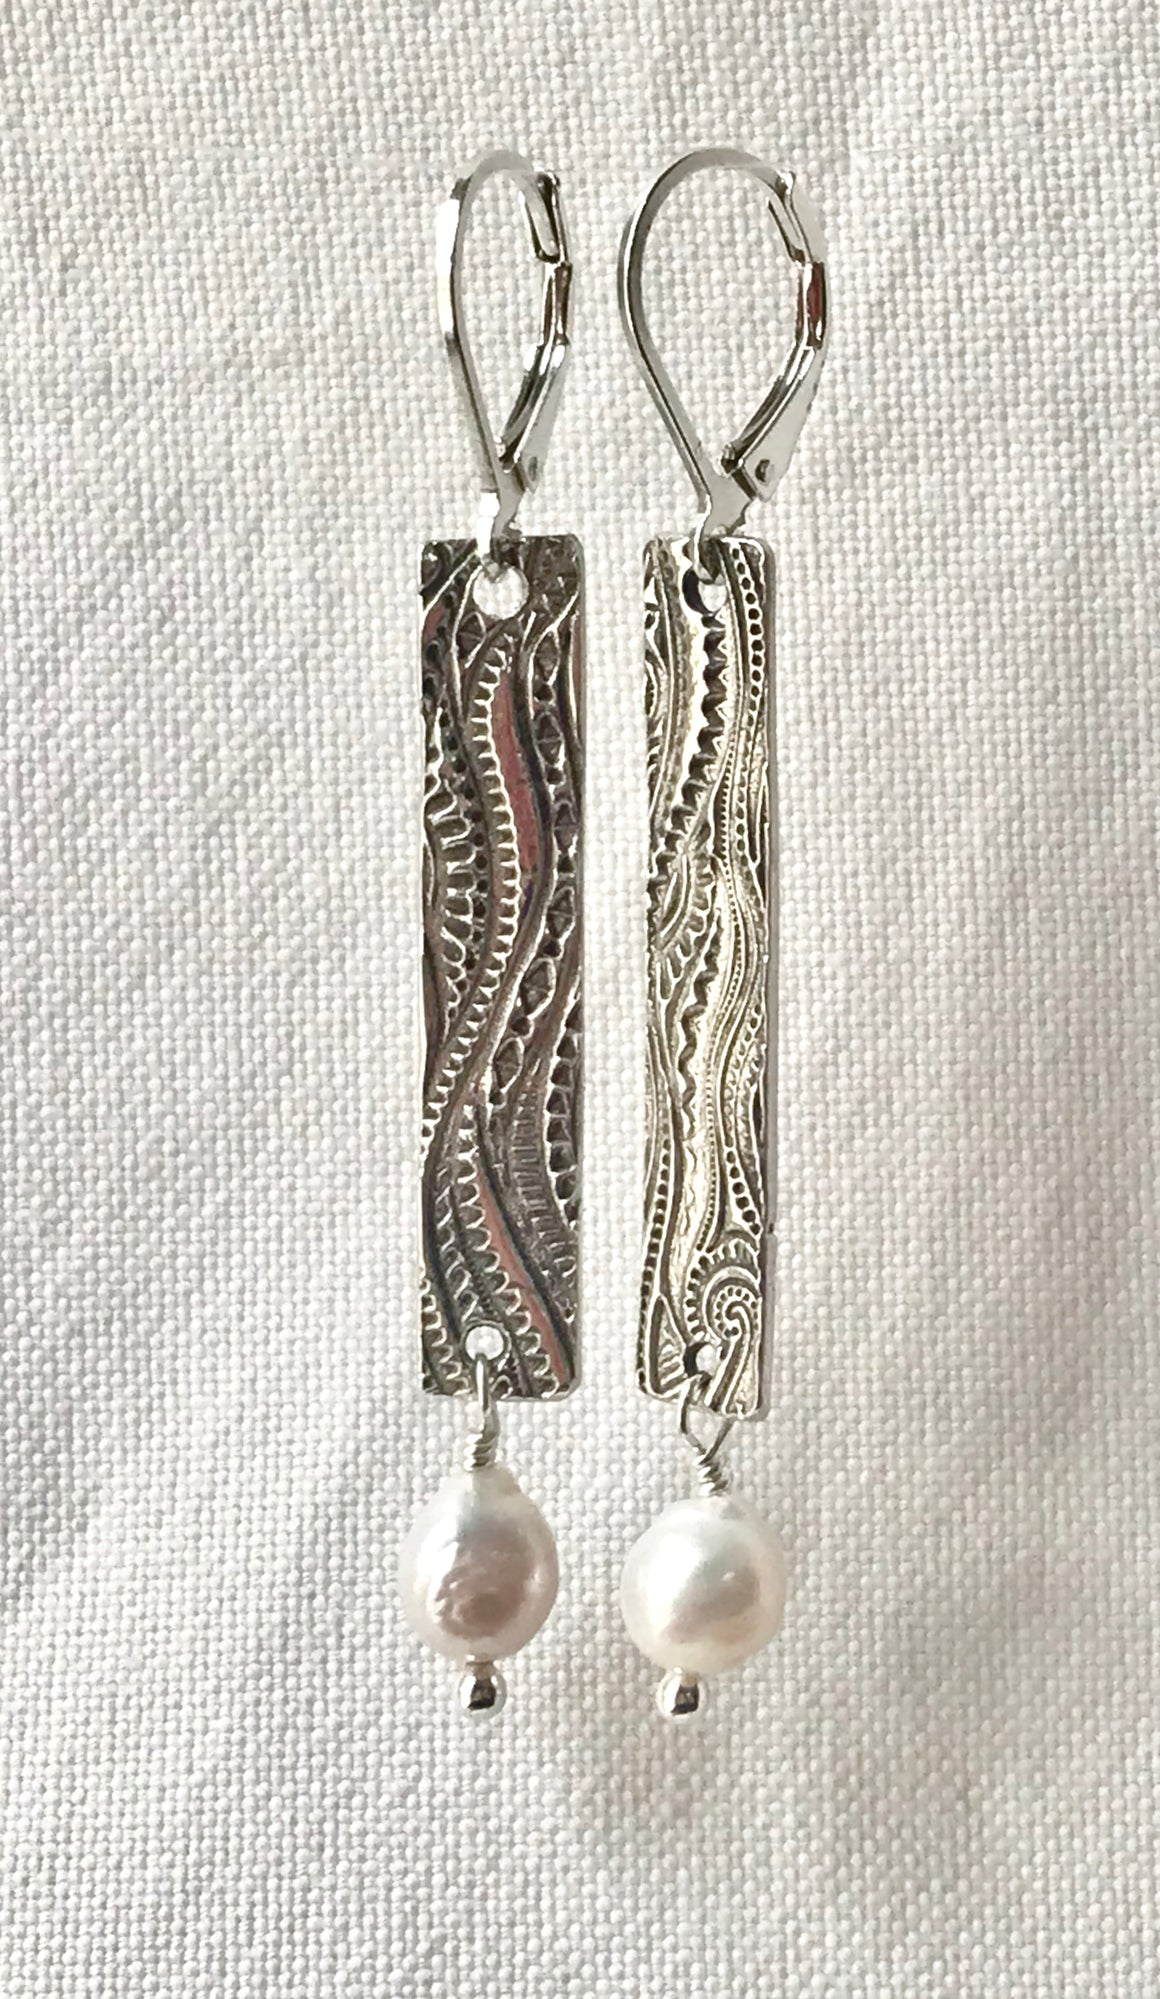 Long Narrow Silver Rectangle Earrings with White Freshwater Pearl Drops on Lever backs